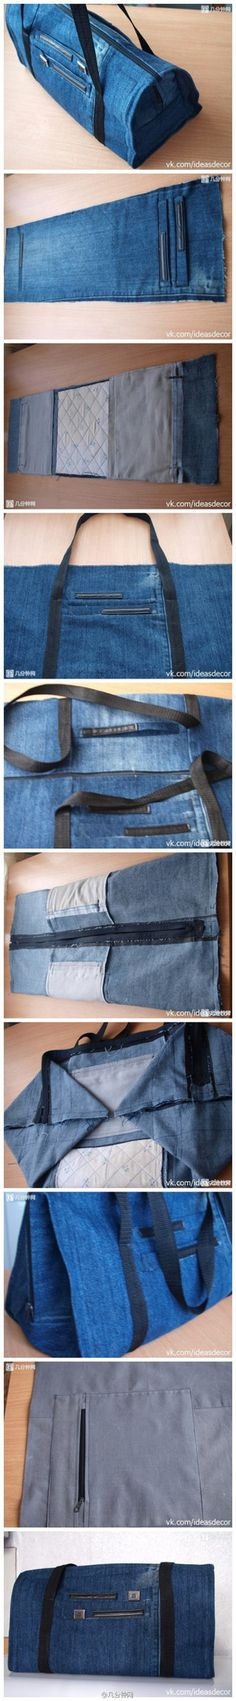 Another way to recycle old jeans